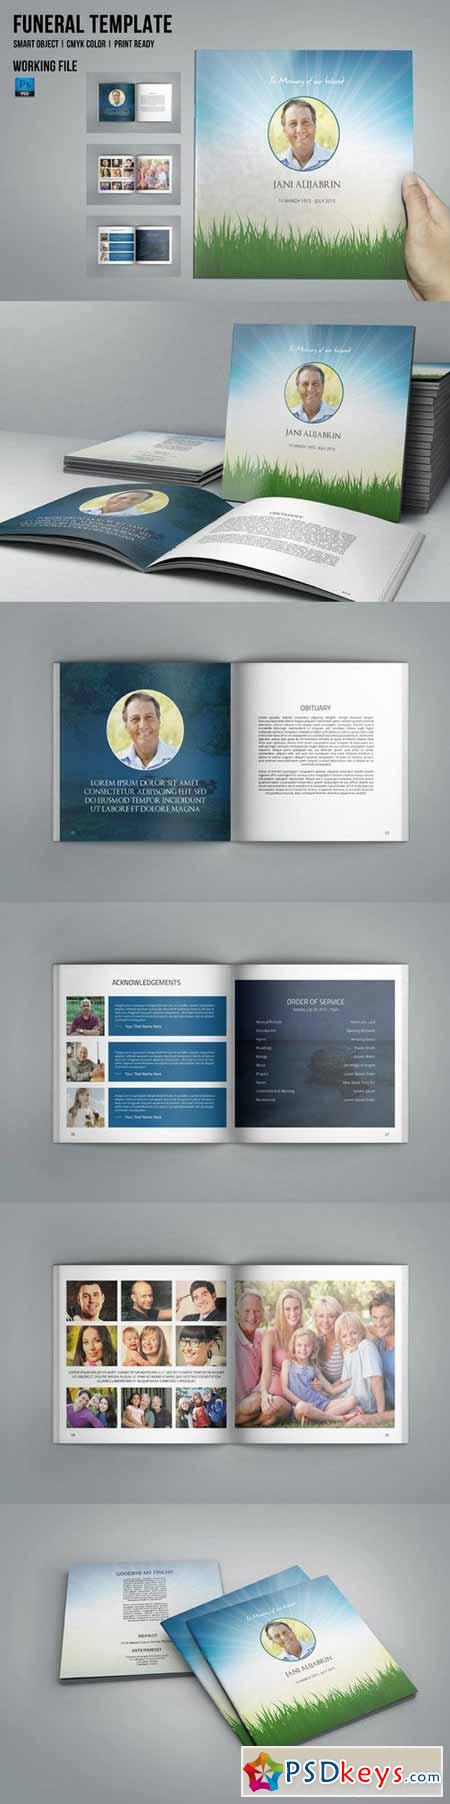 Funeral Program Template-8 Page-V435 579597